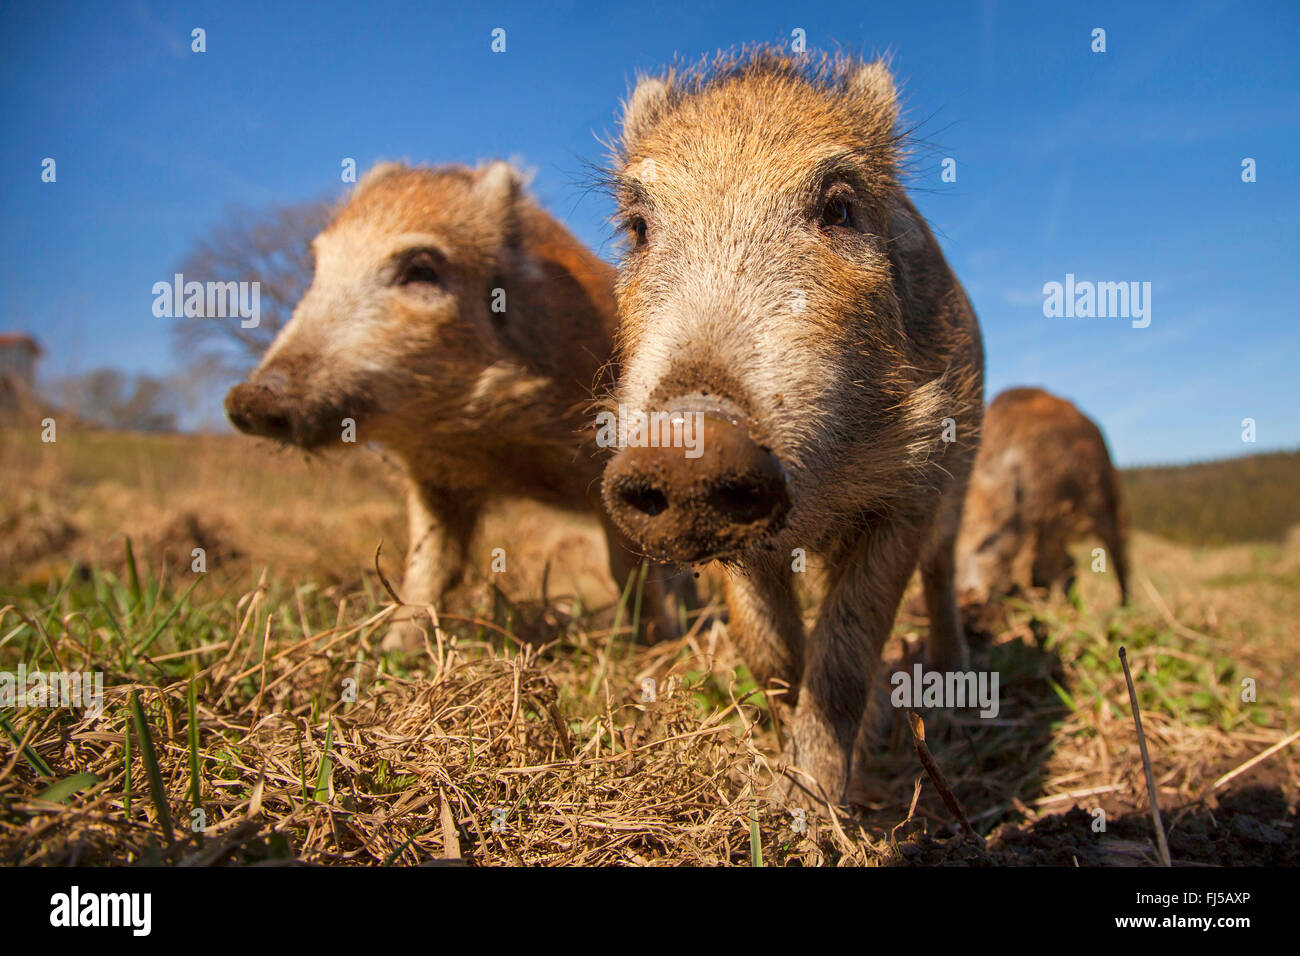 wild boar, pig, wild boar (Sus scrofa), three shotes in a meadow, Germany, Rhineland-Palatinate - Stock Image